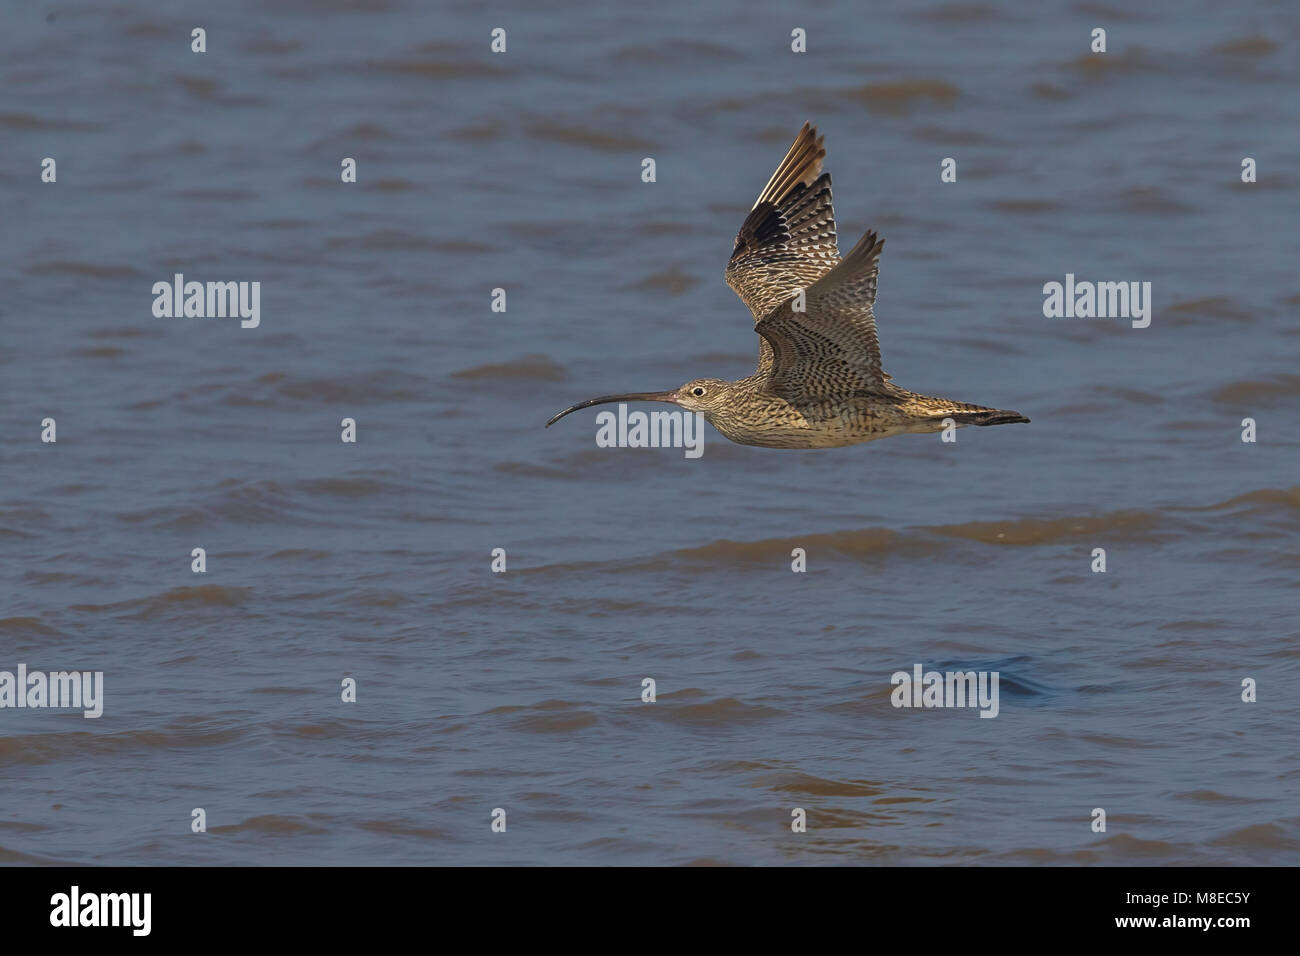 Siberische Wulp in de vlucht; Far Eastern Curlew in flight - Stock Image